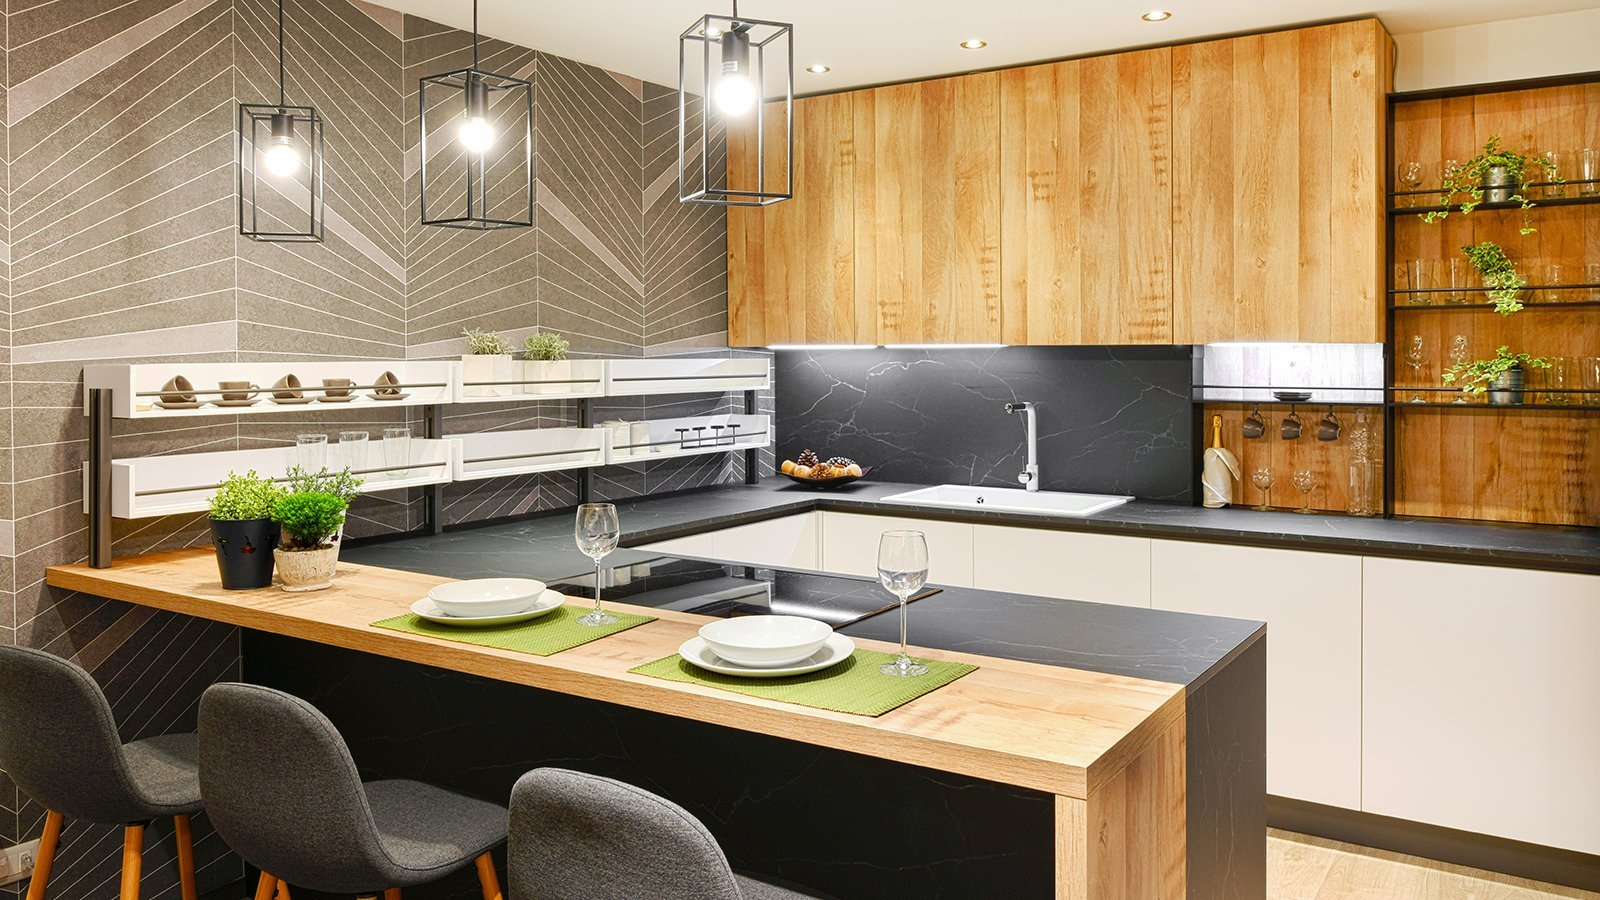 Modern fitted kitchen interior with appliances and bar counter with place settings for dining and row of stools lit by hanging ceiling lights